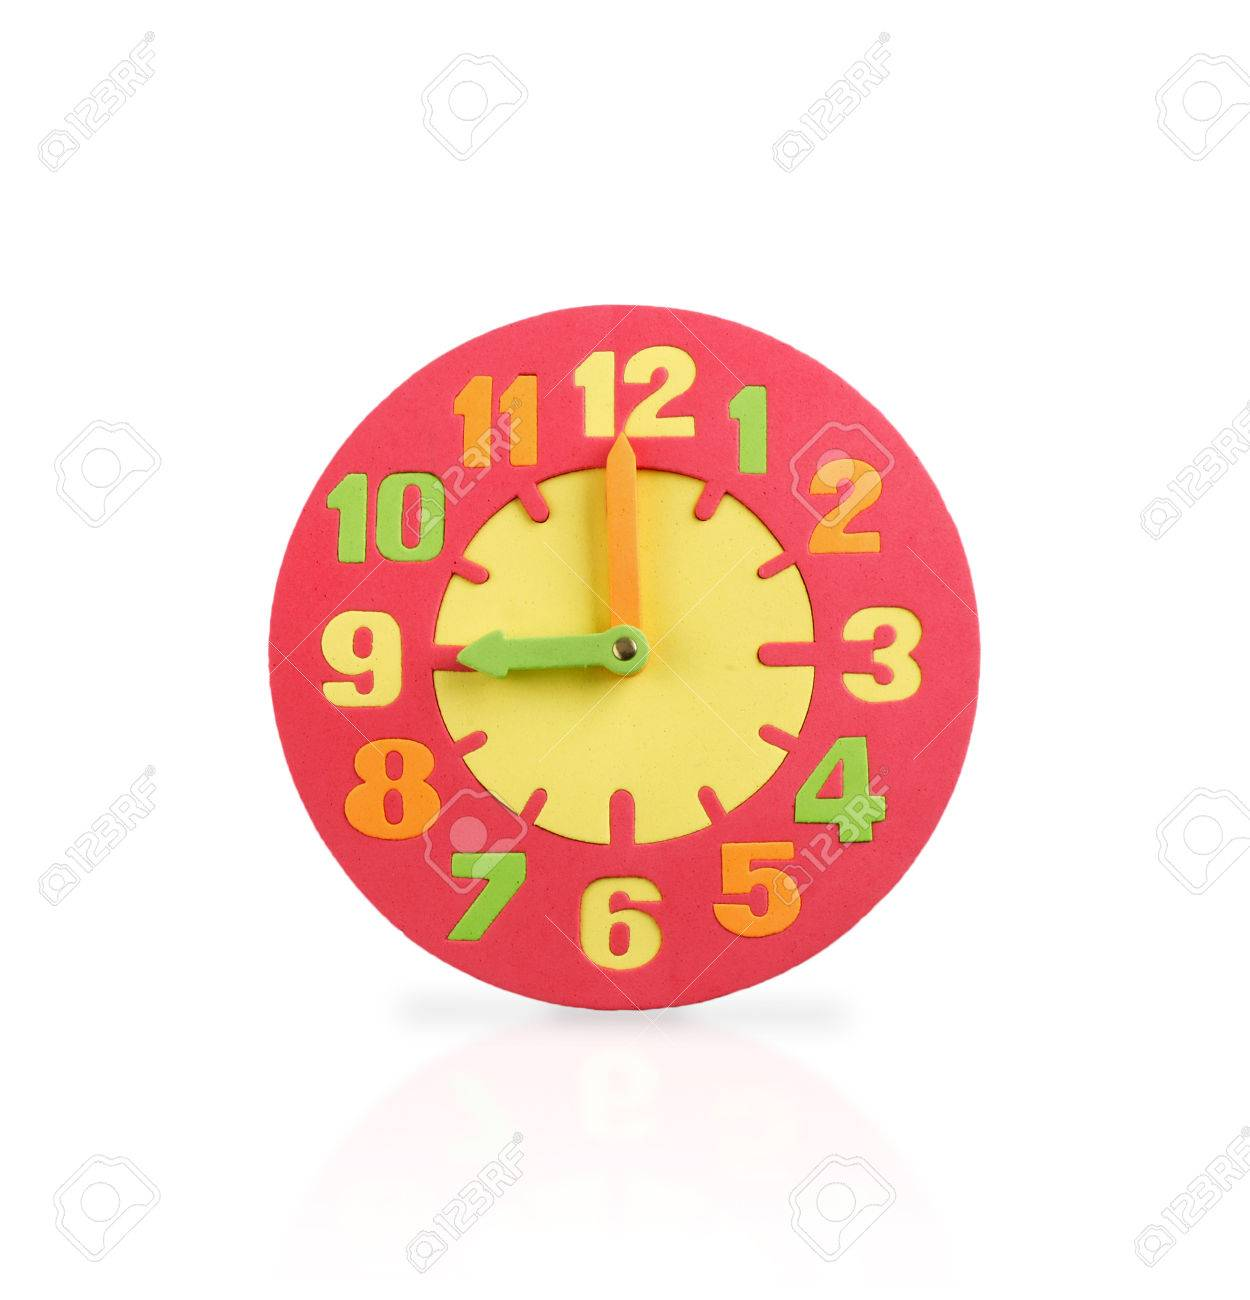 Kids wall clock train wall clock wall clock monkey and banana colorful wall clock a toy for kids in top view isolated on white background stock photo amipublicfo Choice Image